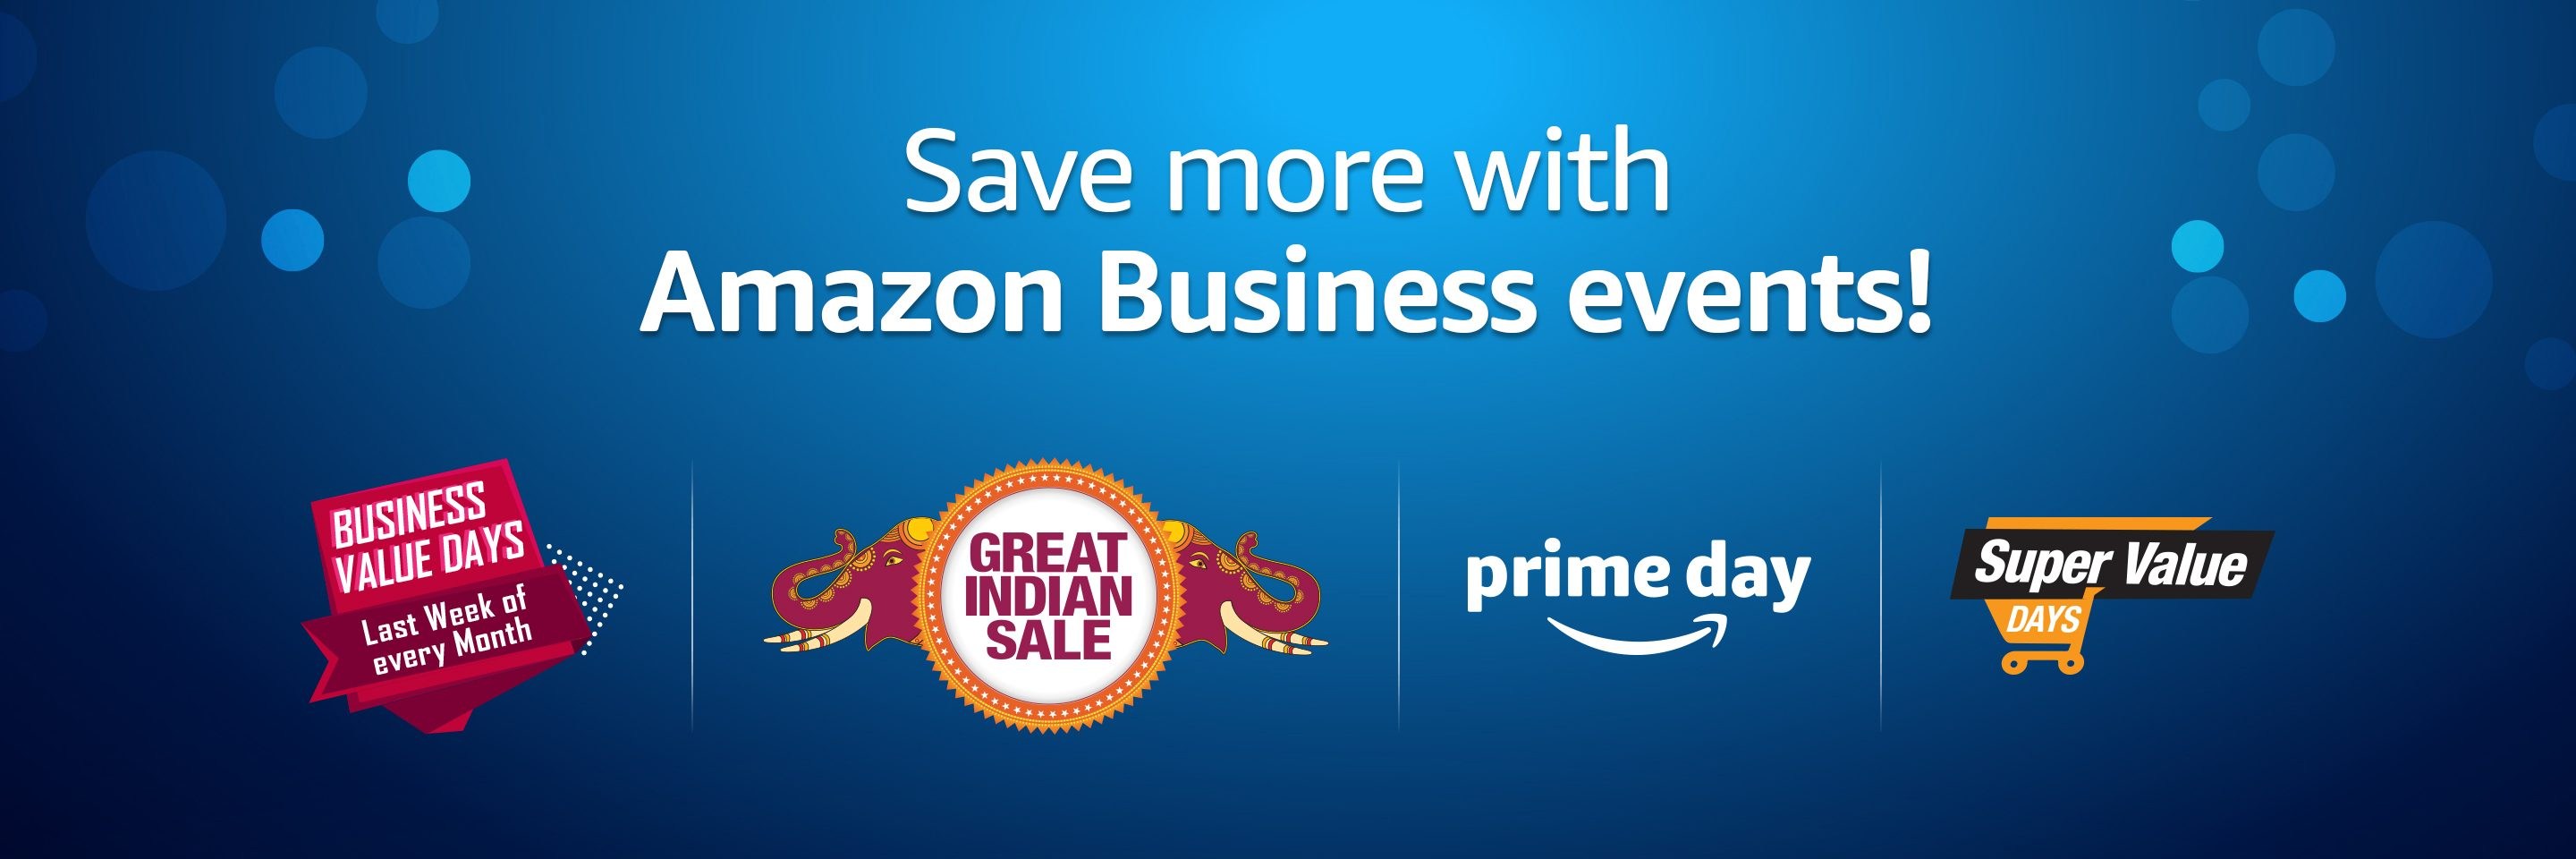 Events by Amazon Business